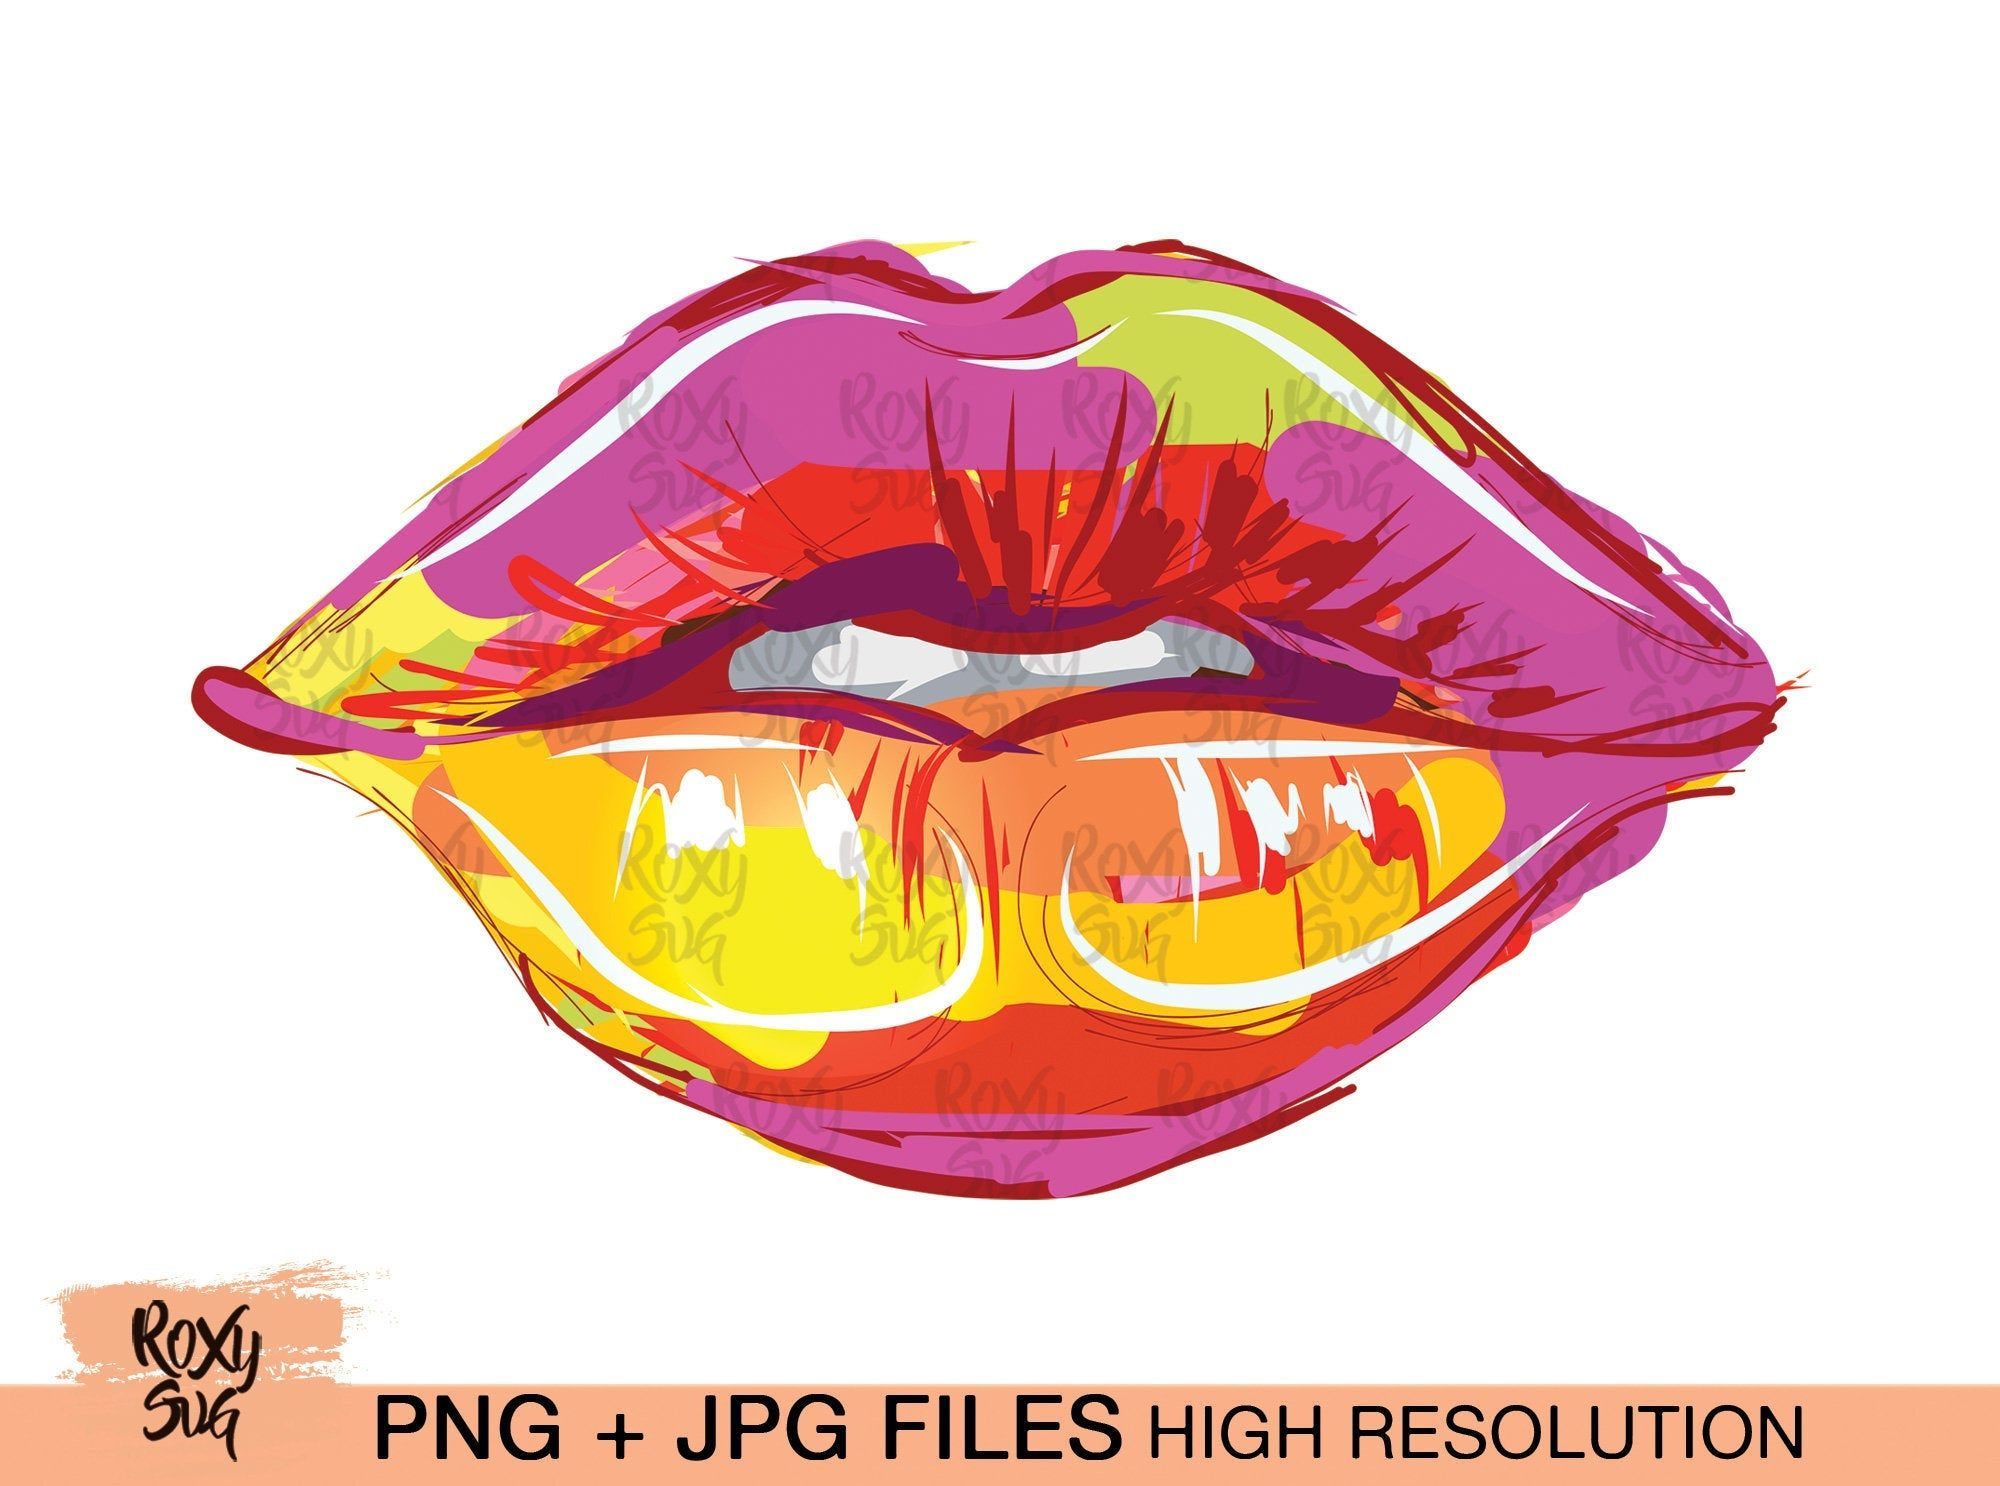 Lips Clipart Sublimation Designs Sublimation Designs Downloads Lips Iron On Decal Lips Sublimation Download Kiss Png Lips Png Clip Art Free Vector Illustration Create And Craft